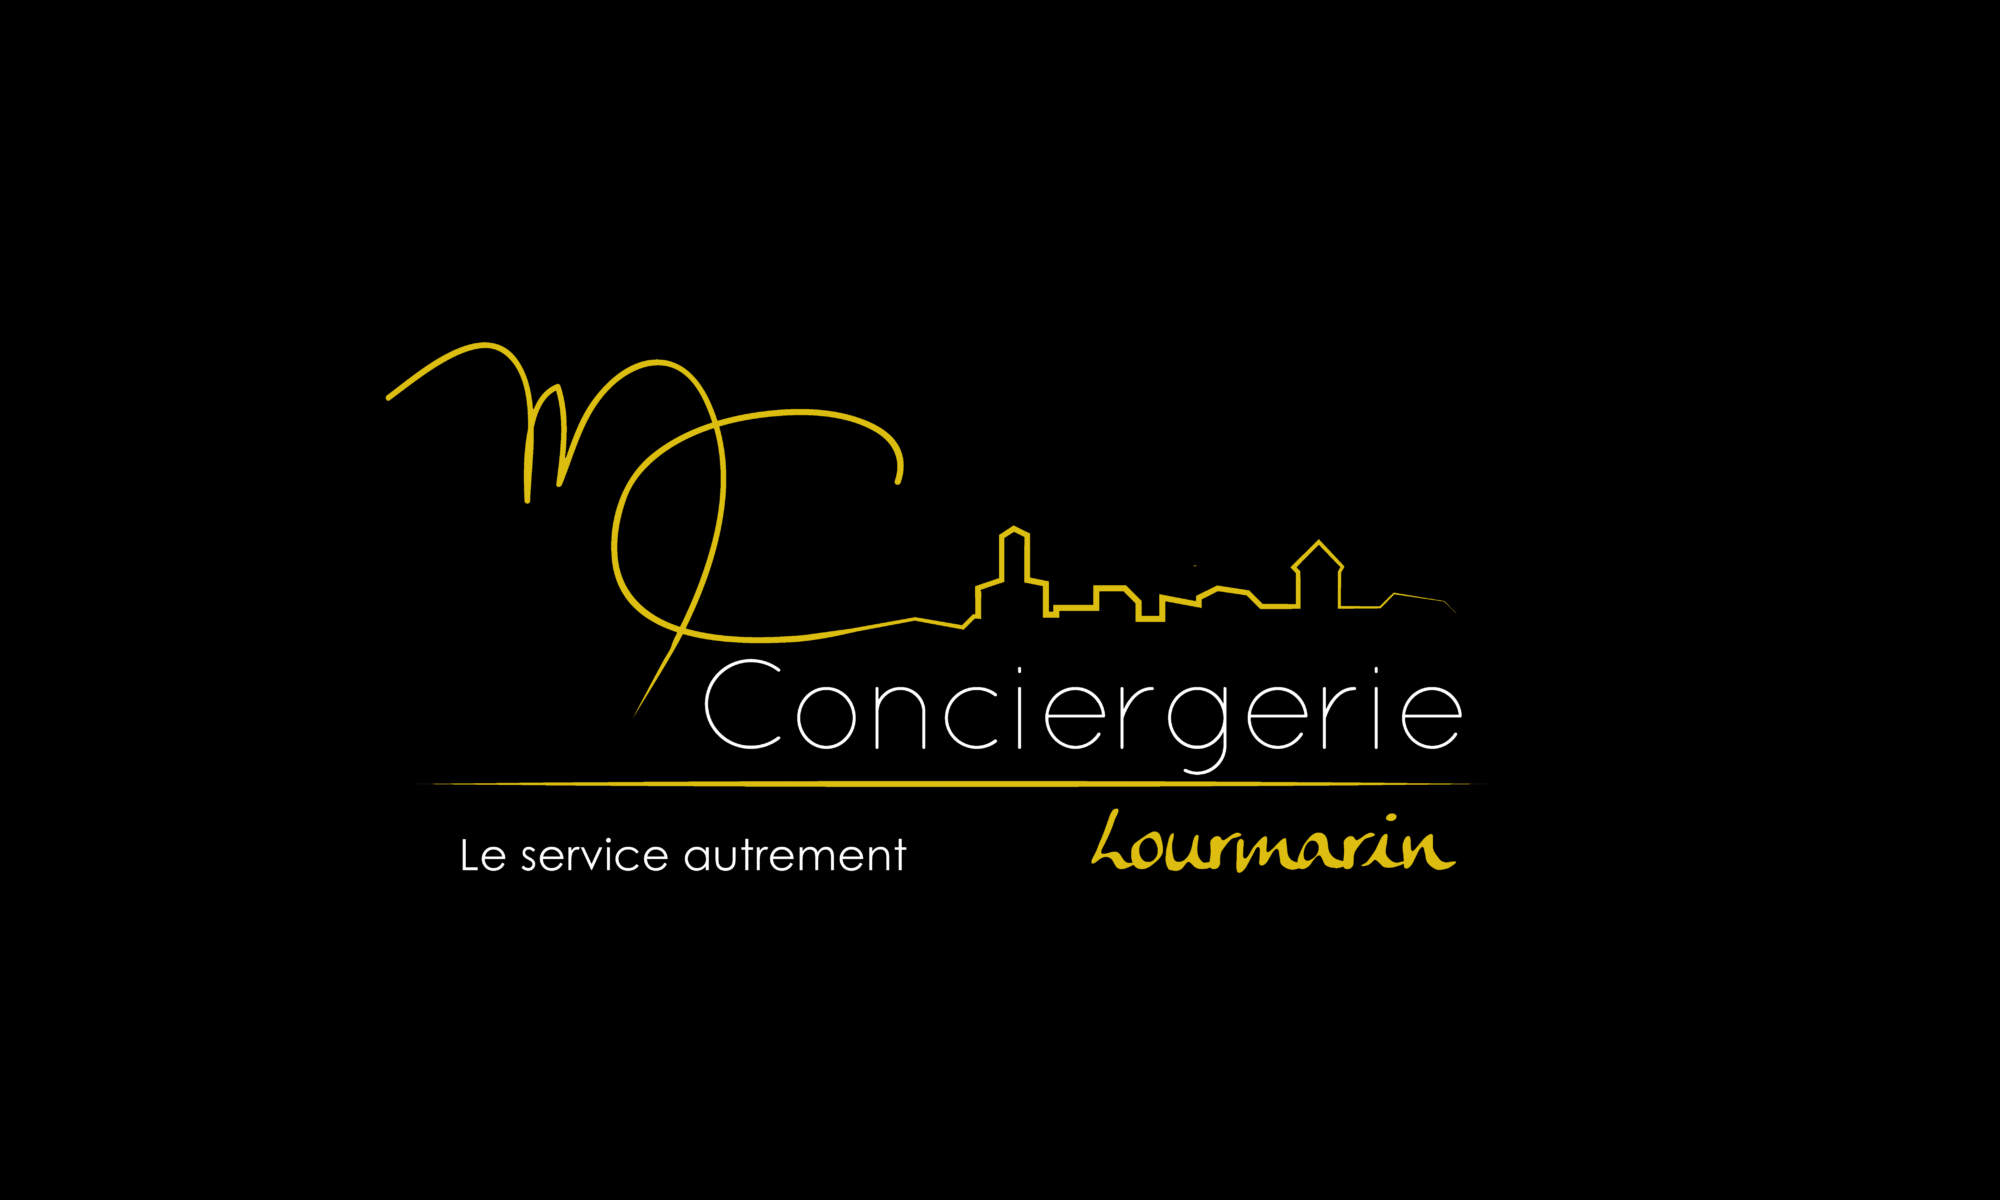 MC Conciergerie